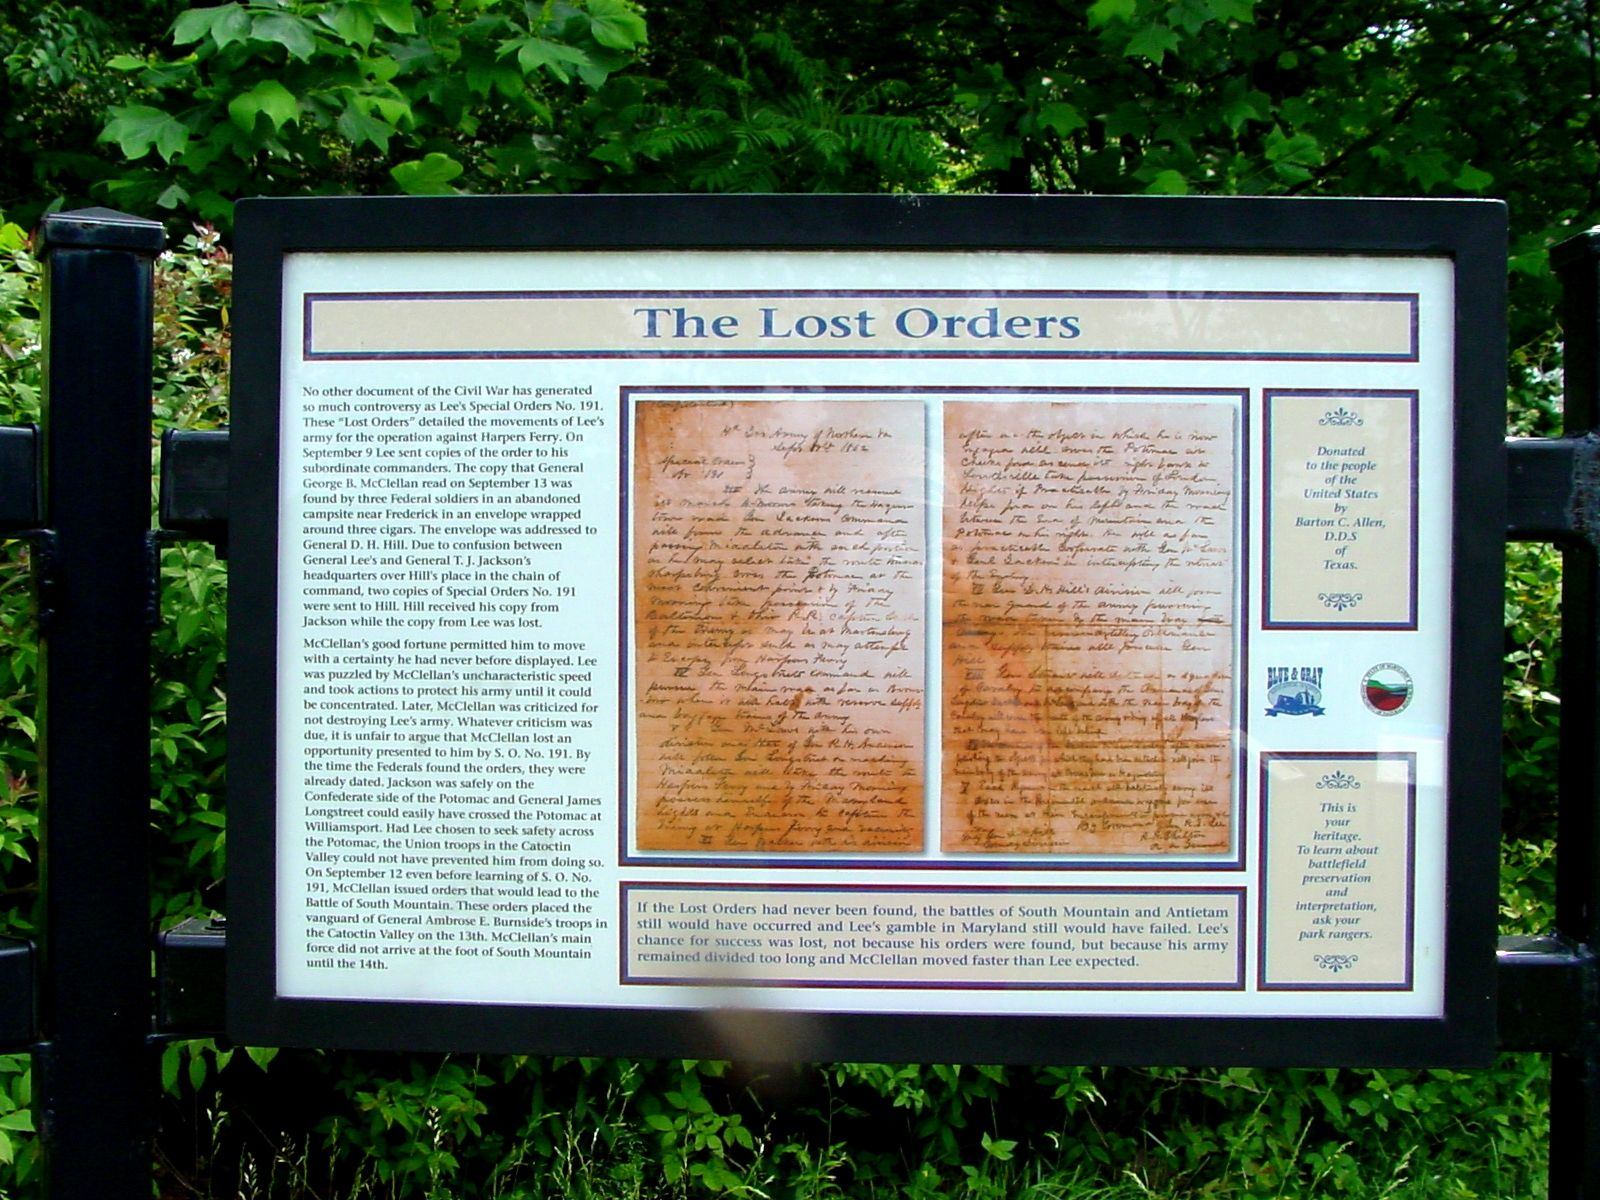 The Lost Orders Marker